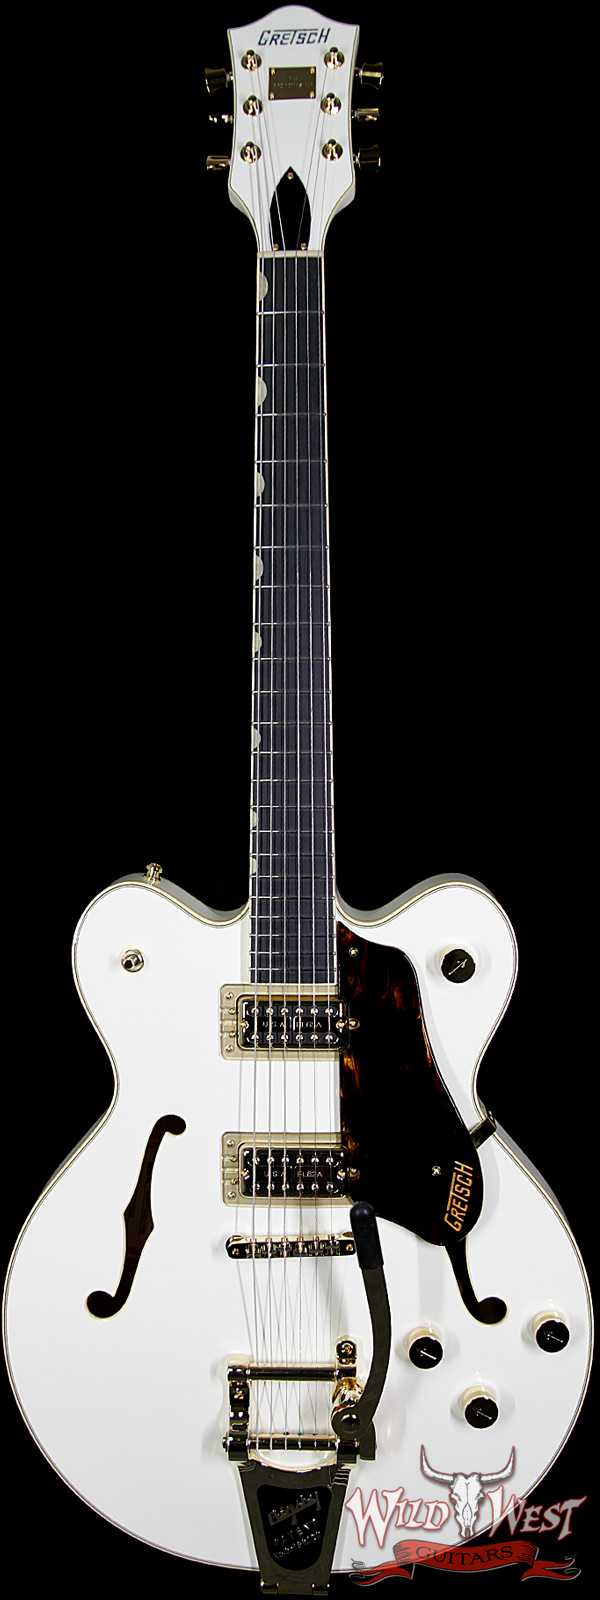 Gretsch Players Edition Broadkaster Center Block Double-Cut String-Thru Bigsby G6609TG-VWT